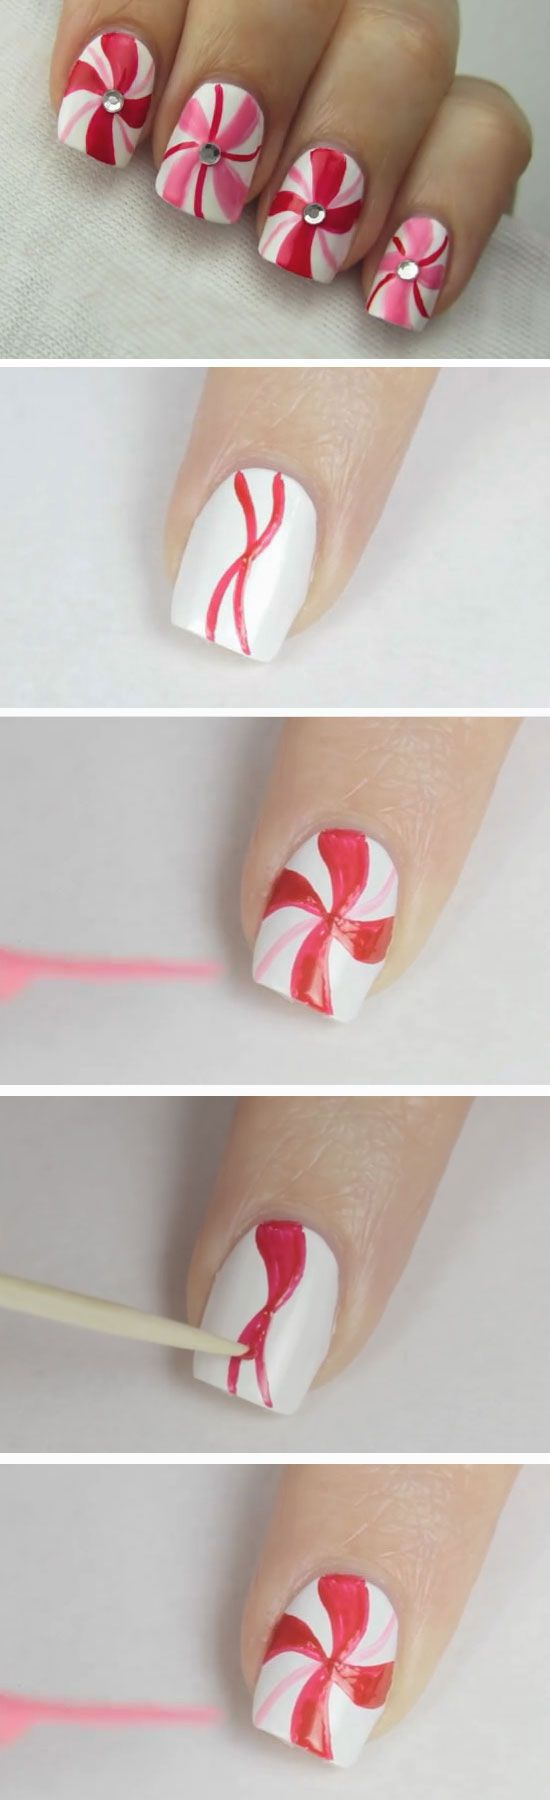 2246 best Nails images on Pinterest | Nail decorations, Nail design ...